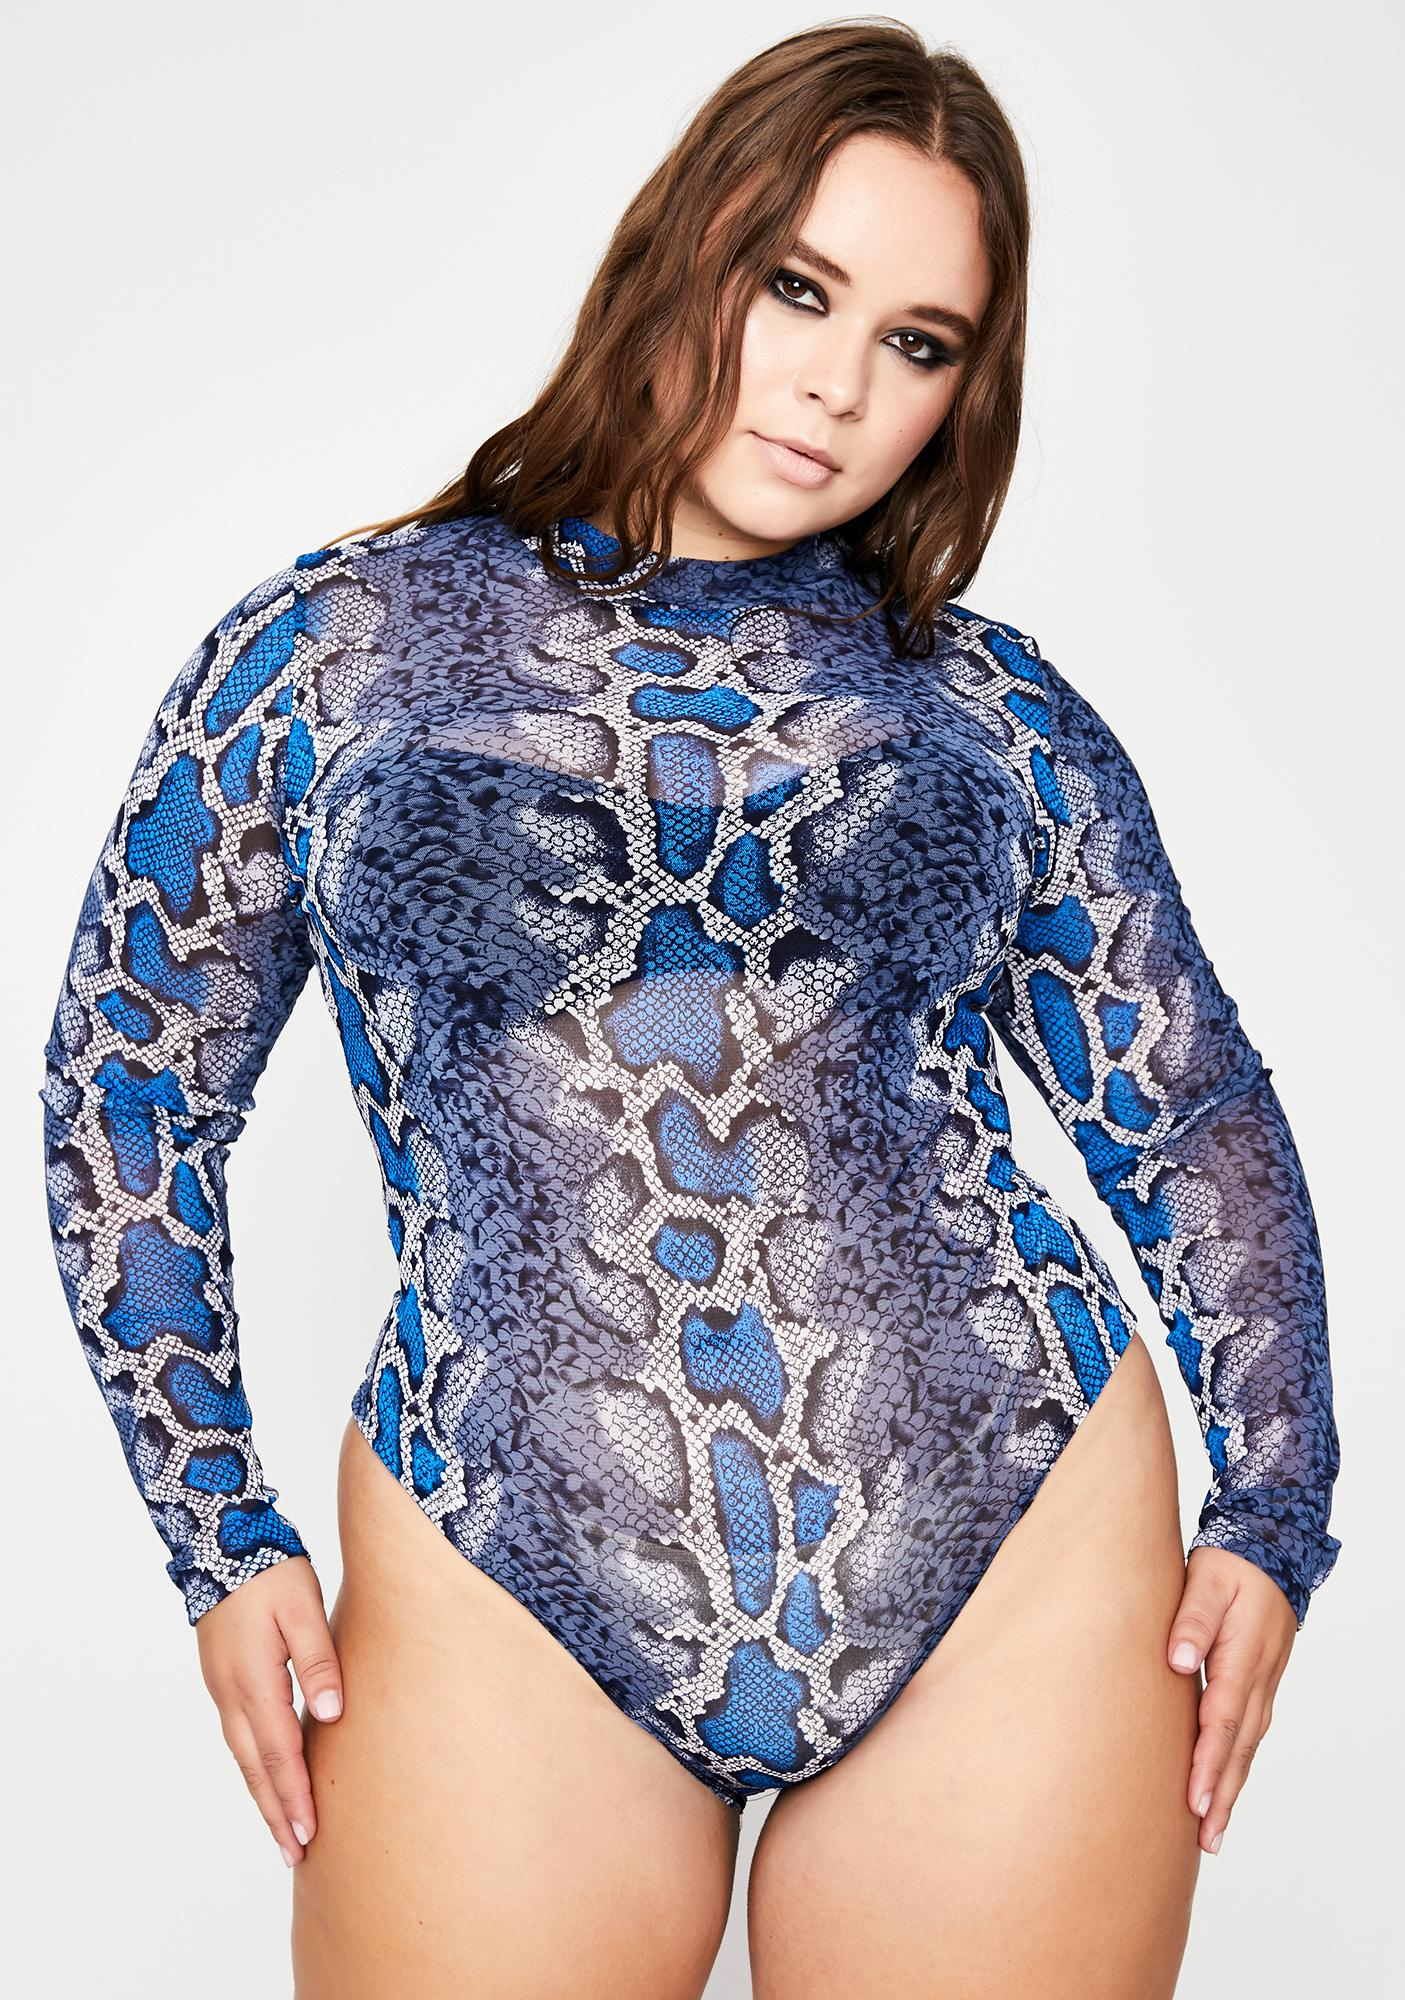 She's Badly Bitten Sheer Bodysuit